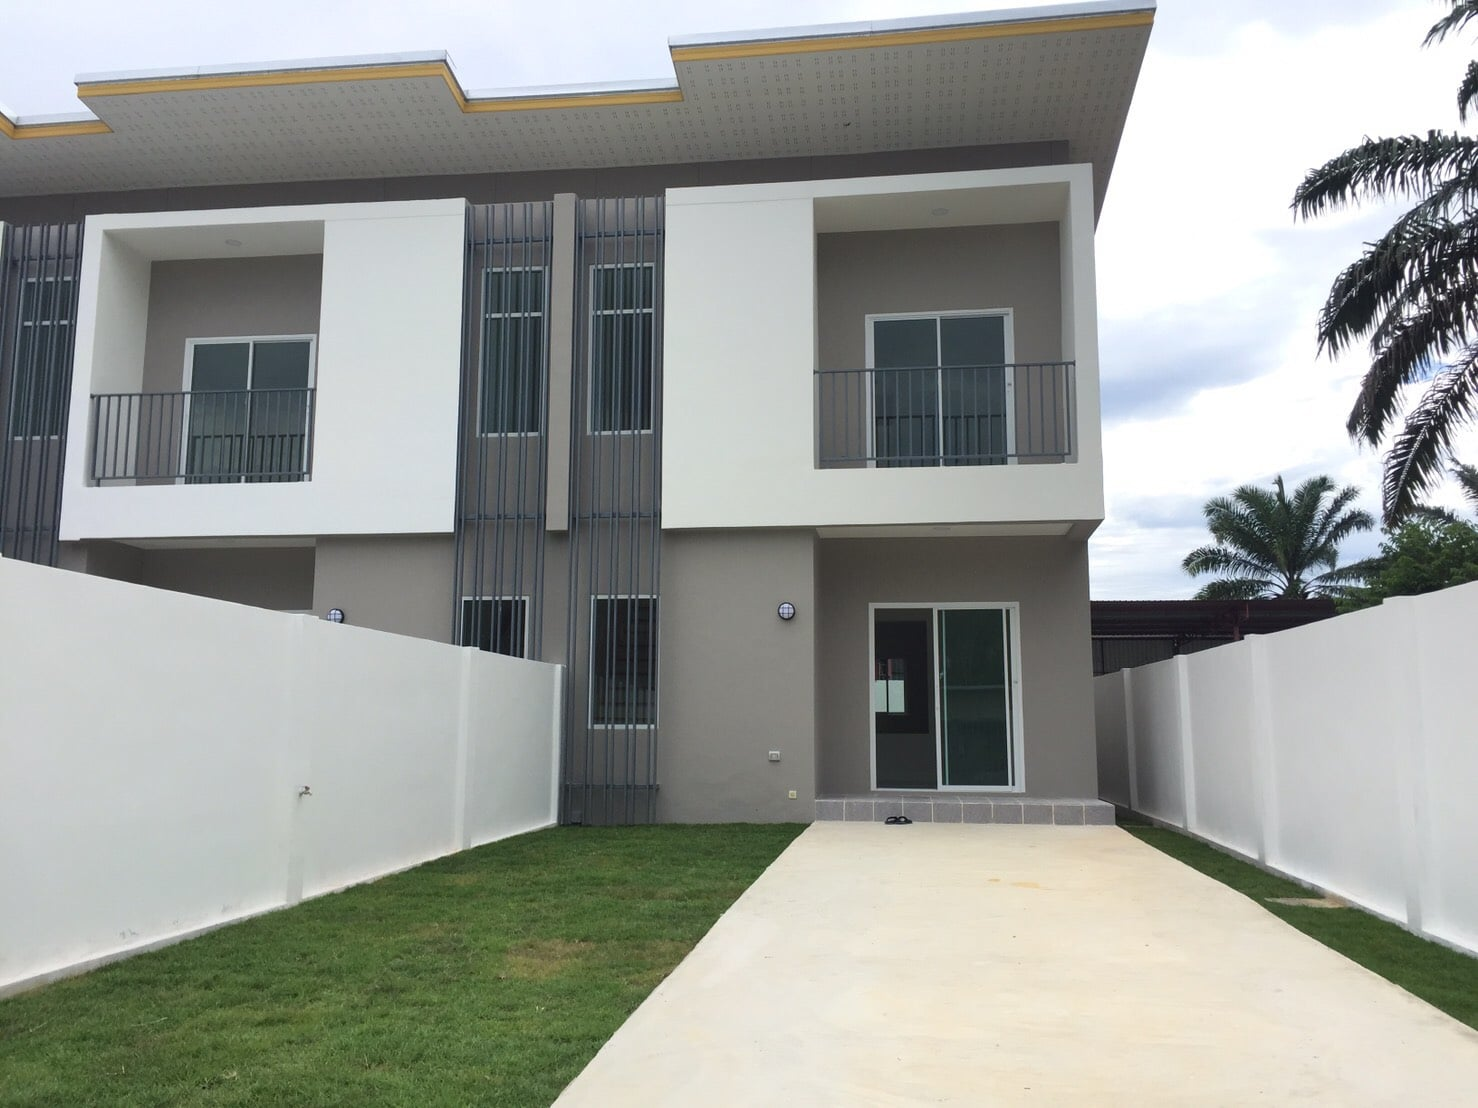 3 Bedrooms Townhouse in Thalang